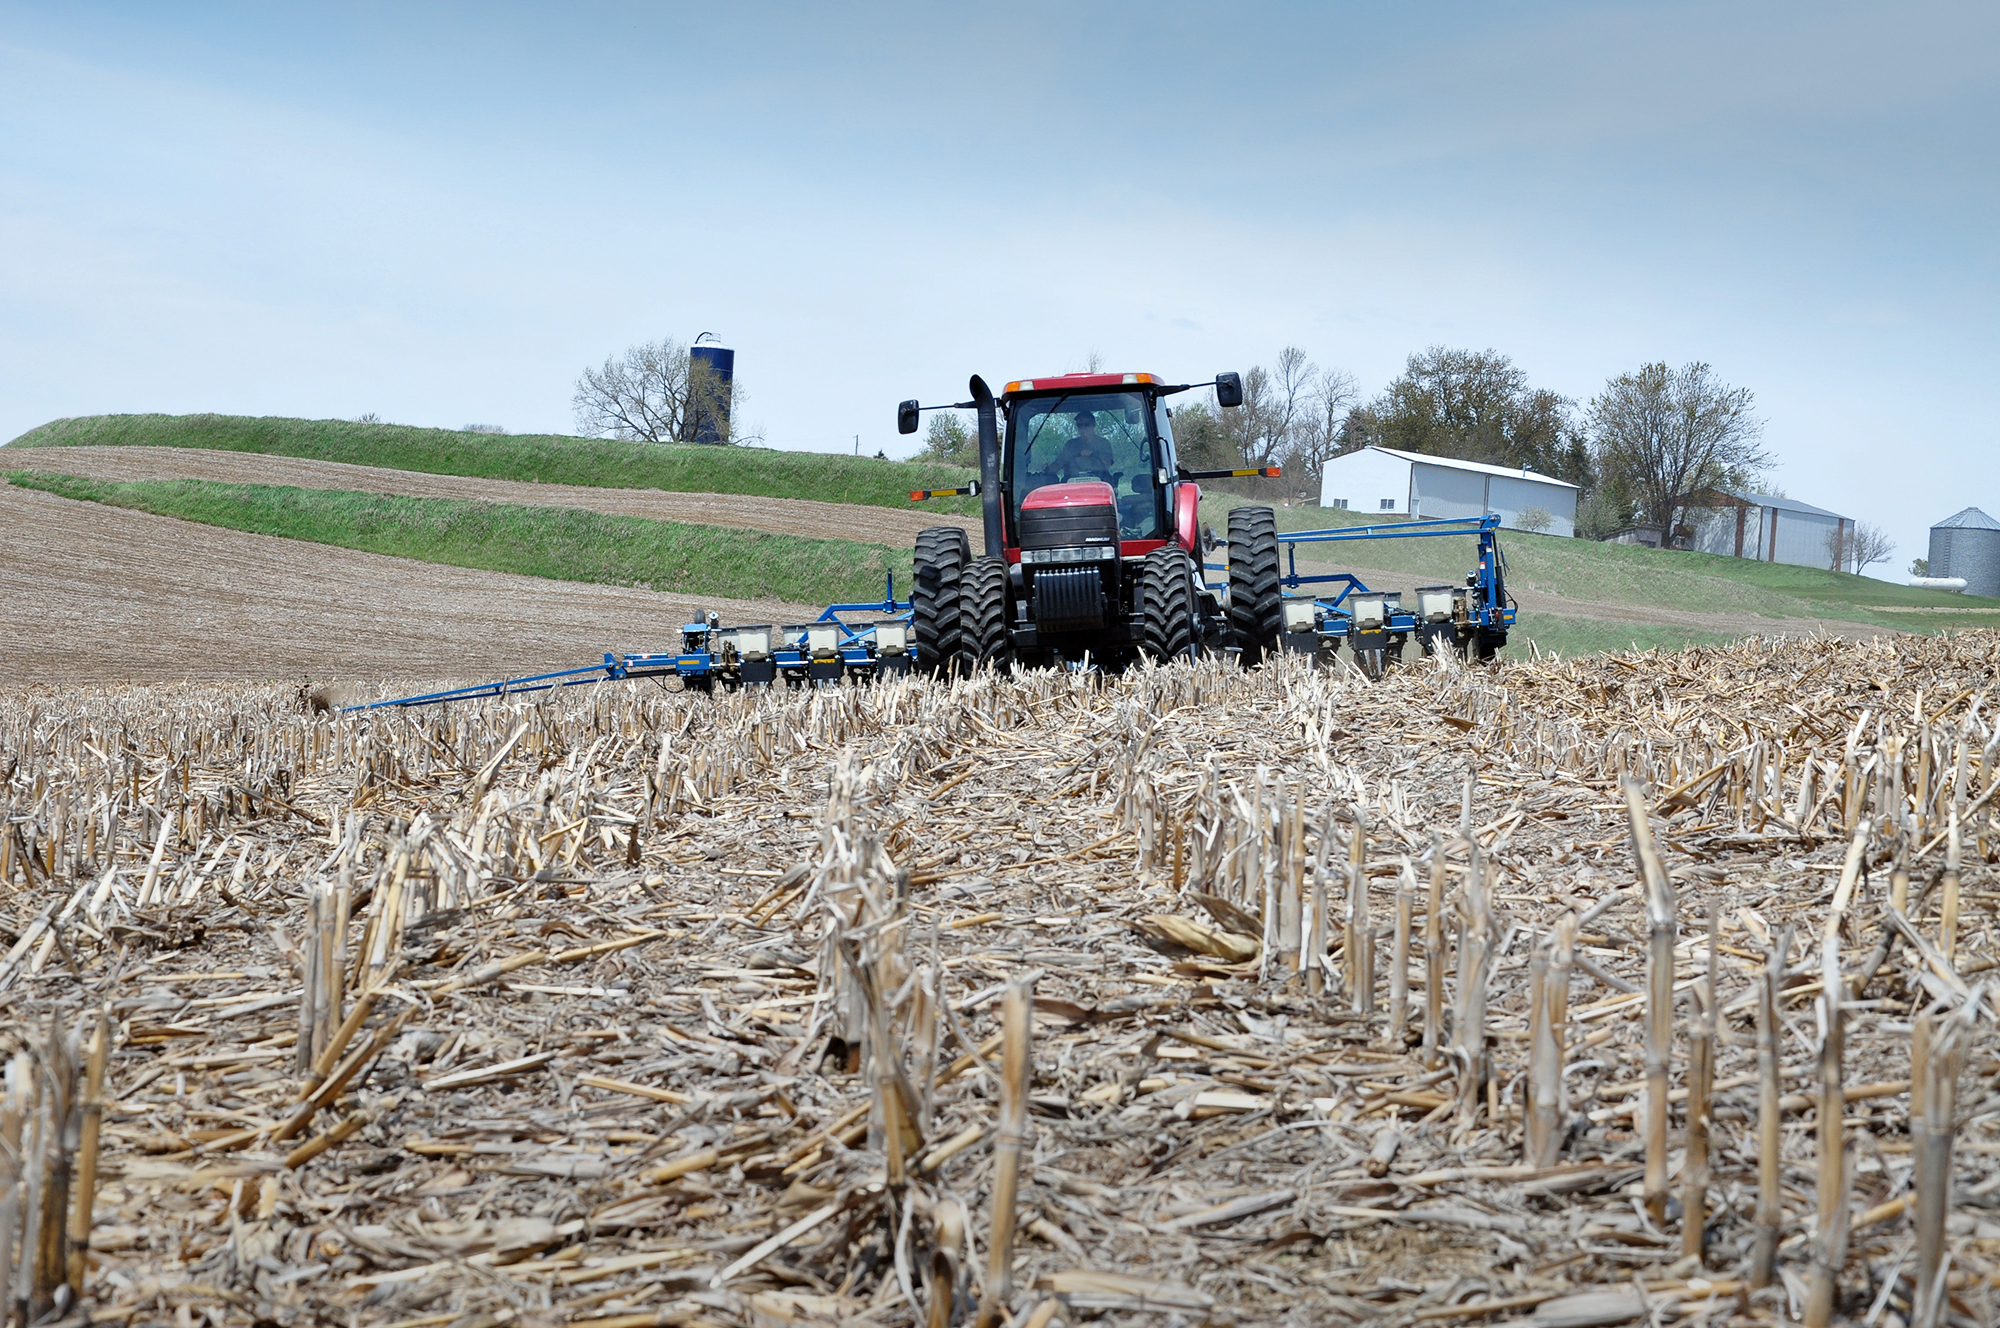 Conservation tillage practices like no-till allow farmers to plant cash crop seeds with little distu